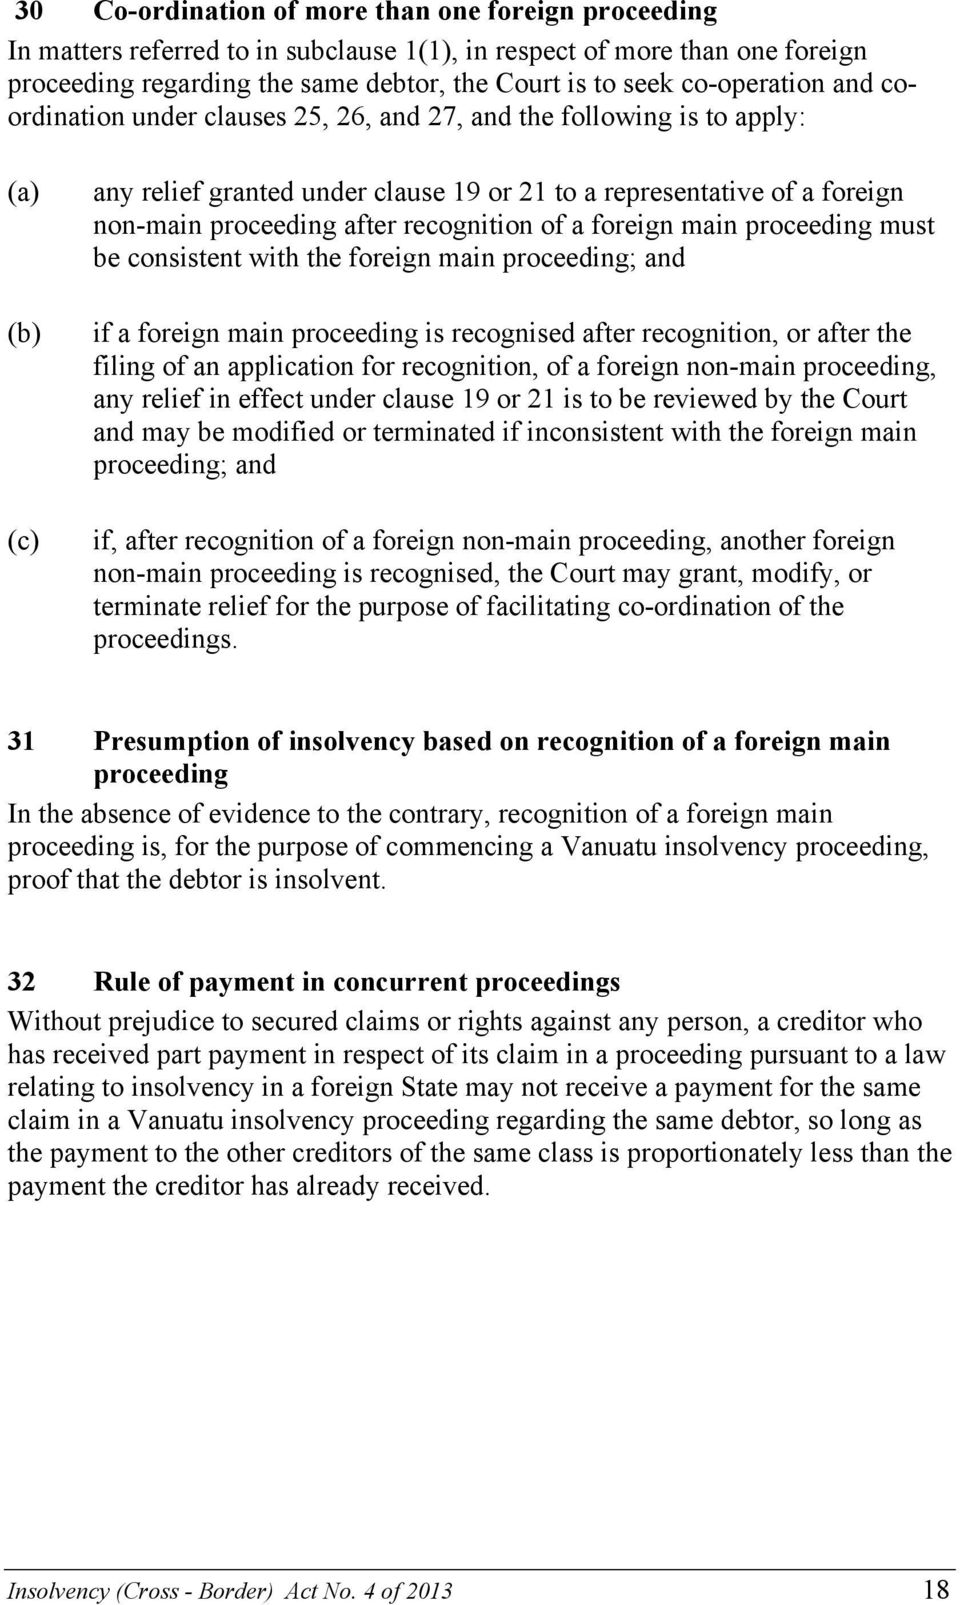 recognition of a foreign main proceeding must be consistent with the foreign main proceeding; and if a foreign main proceeding is recognised after recognition, or after the filing of an application